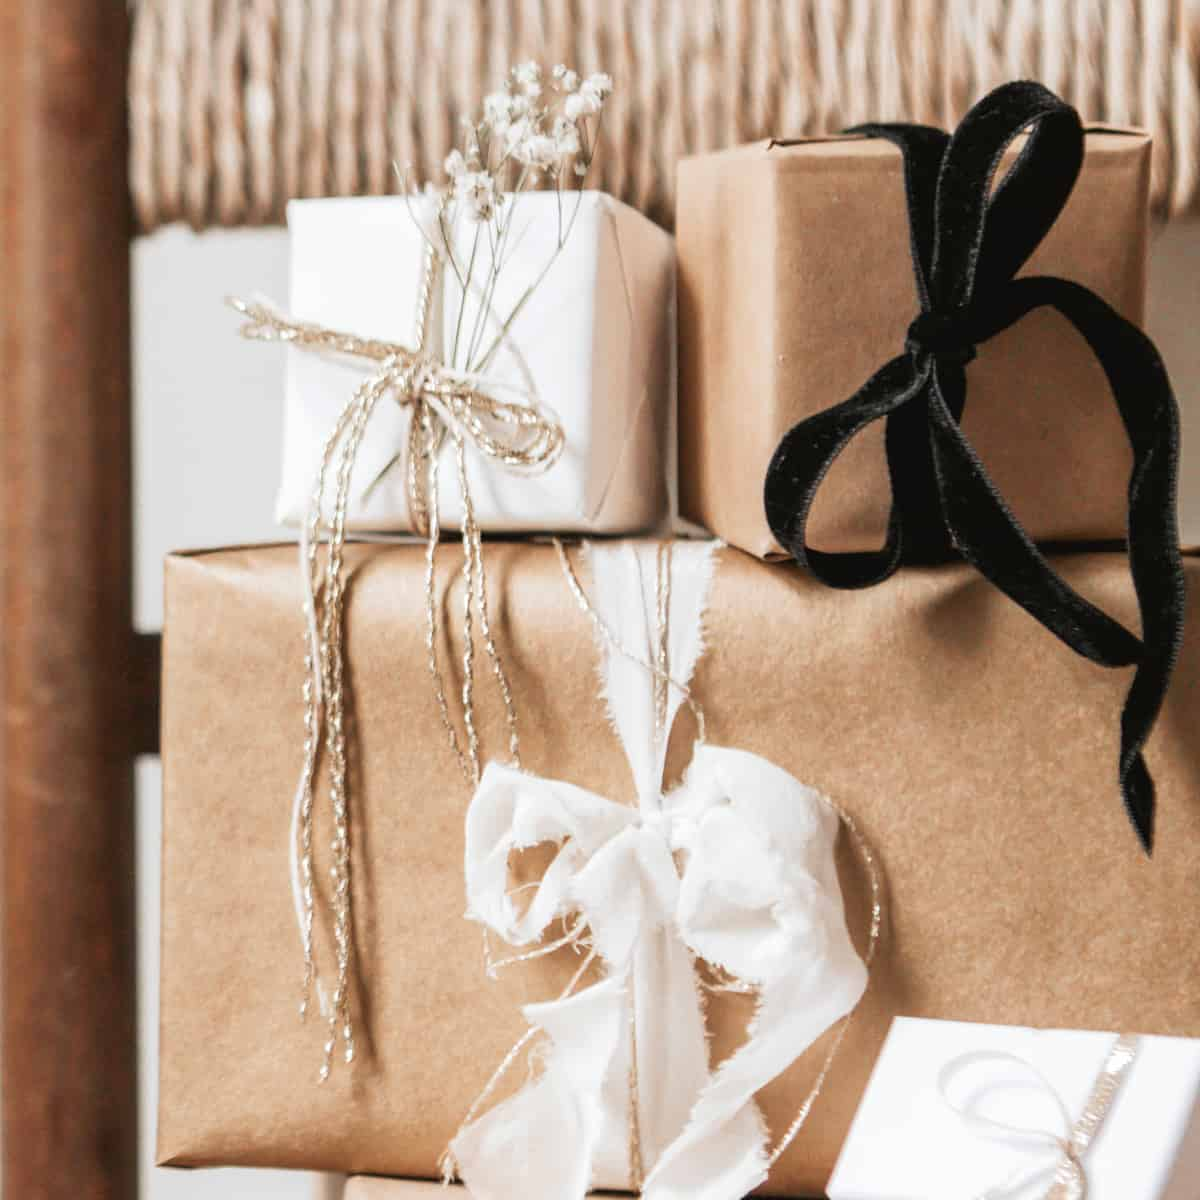 stacked presents wrapped in neutral colored wrapping paper